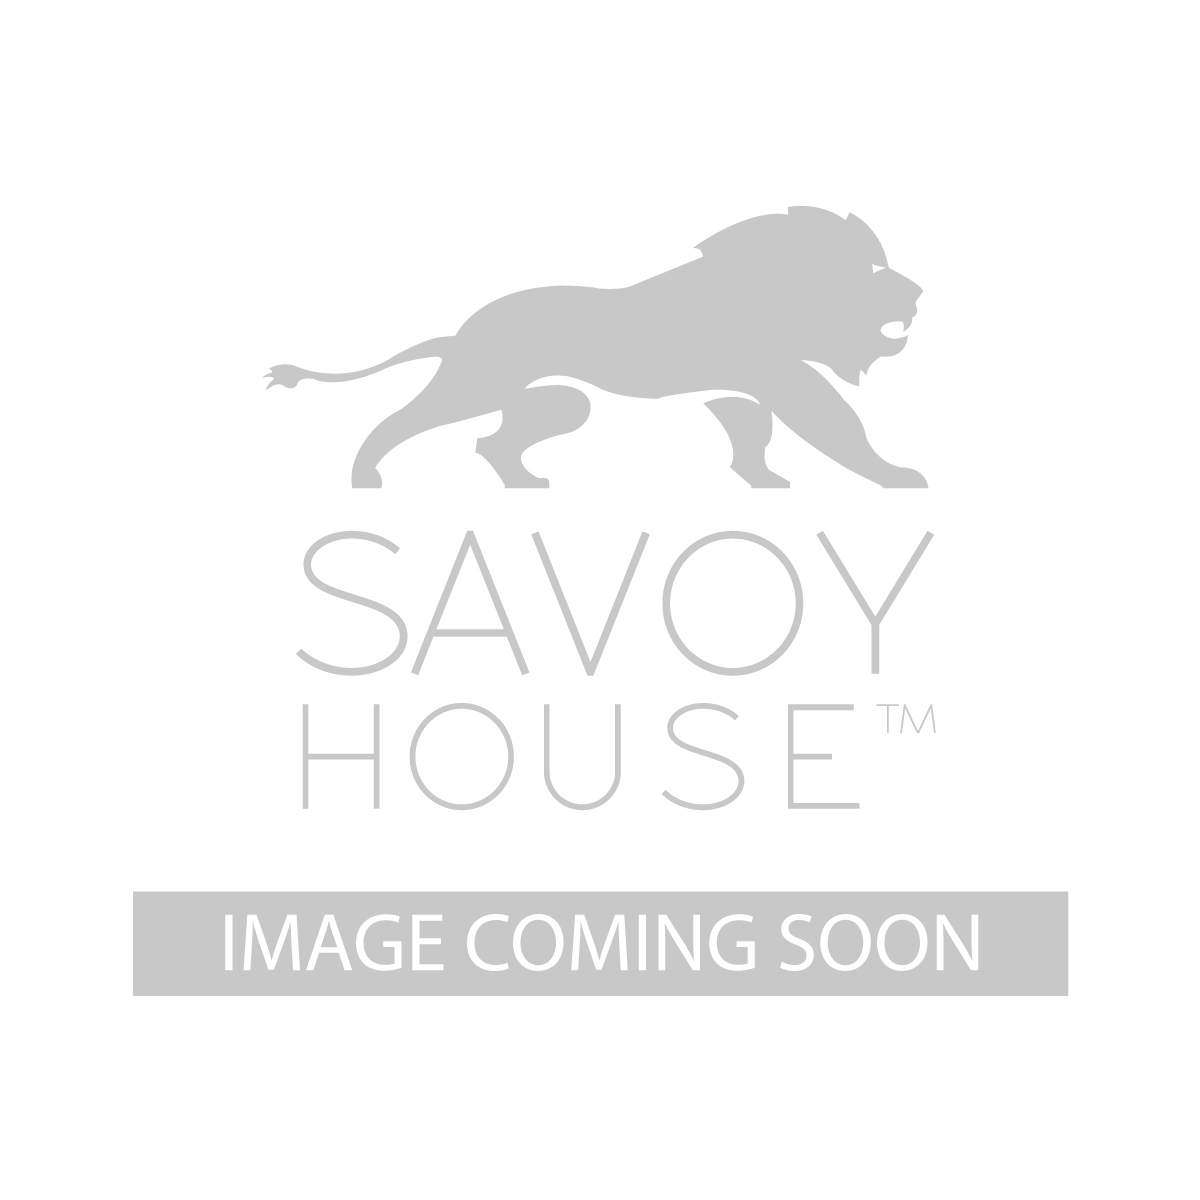 5 3452 Bk Dunnmore Wall Mount Lantern By Savoy House